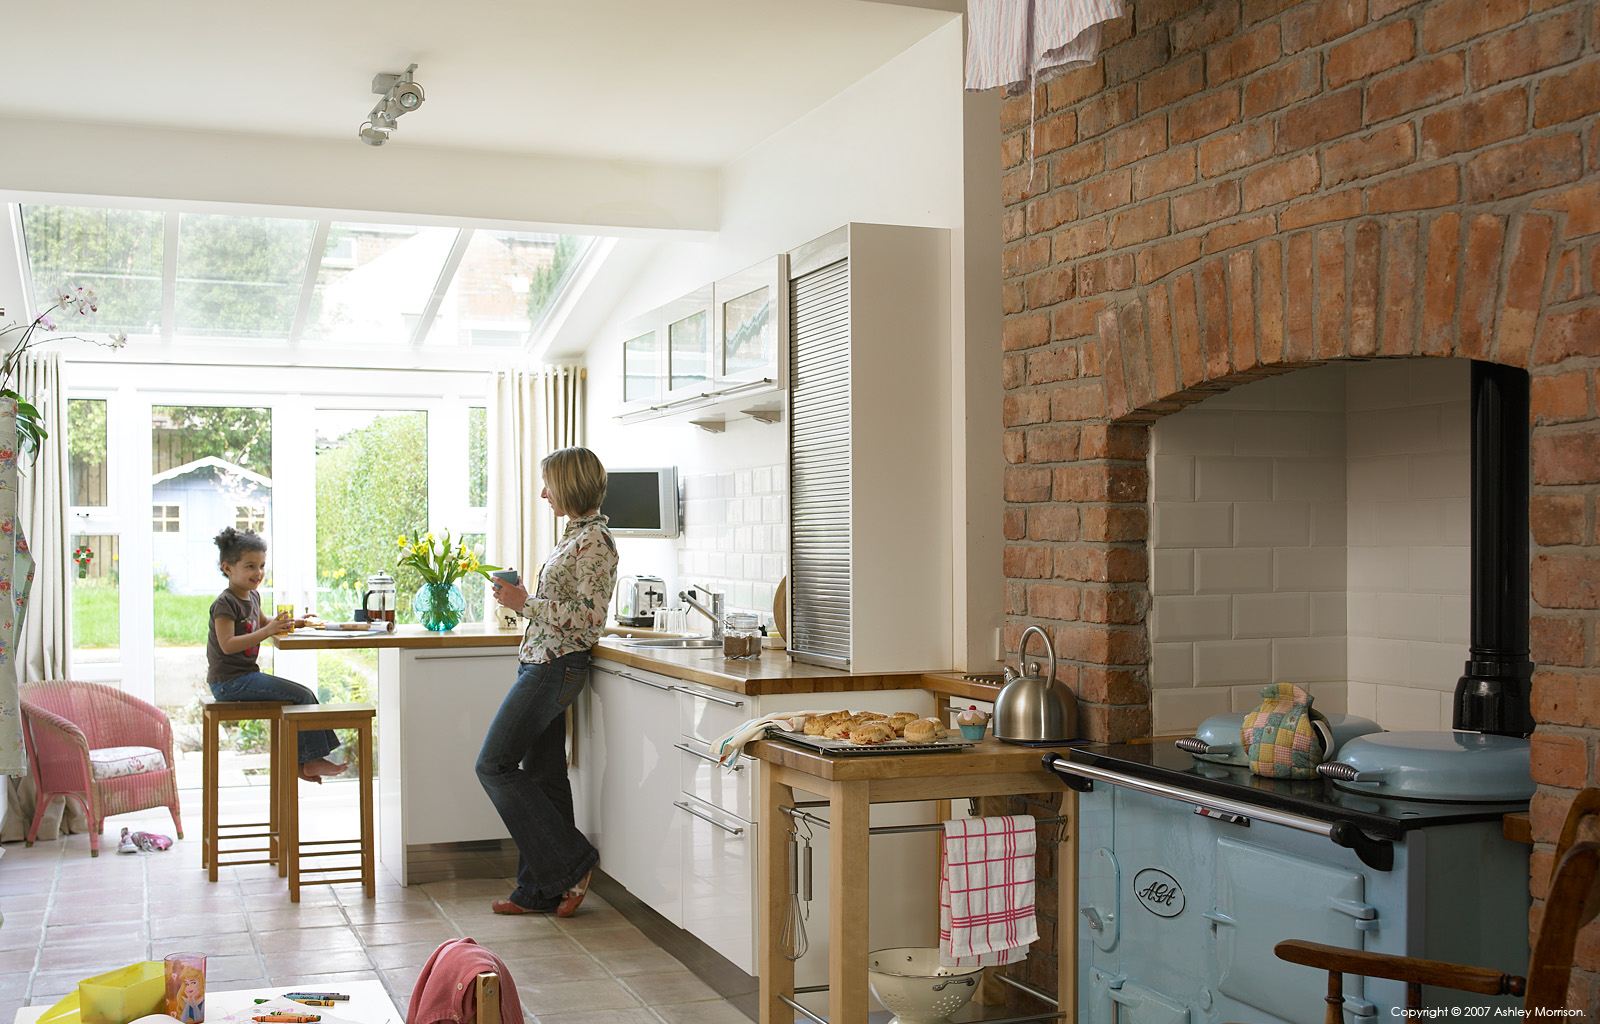 Kathy Reid & her daughter in the kitchen of their Edwardian semi-detached house in Belfast by Ashley Morrison.